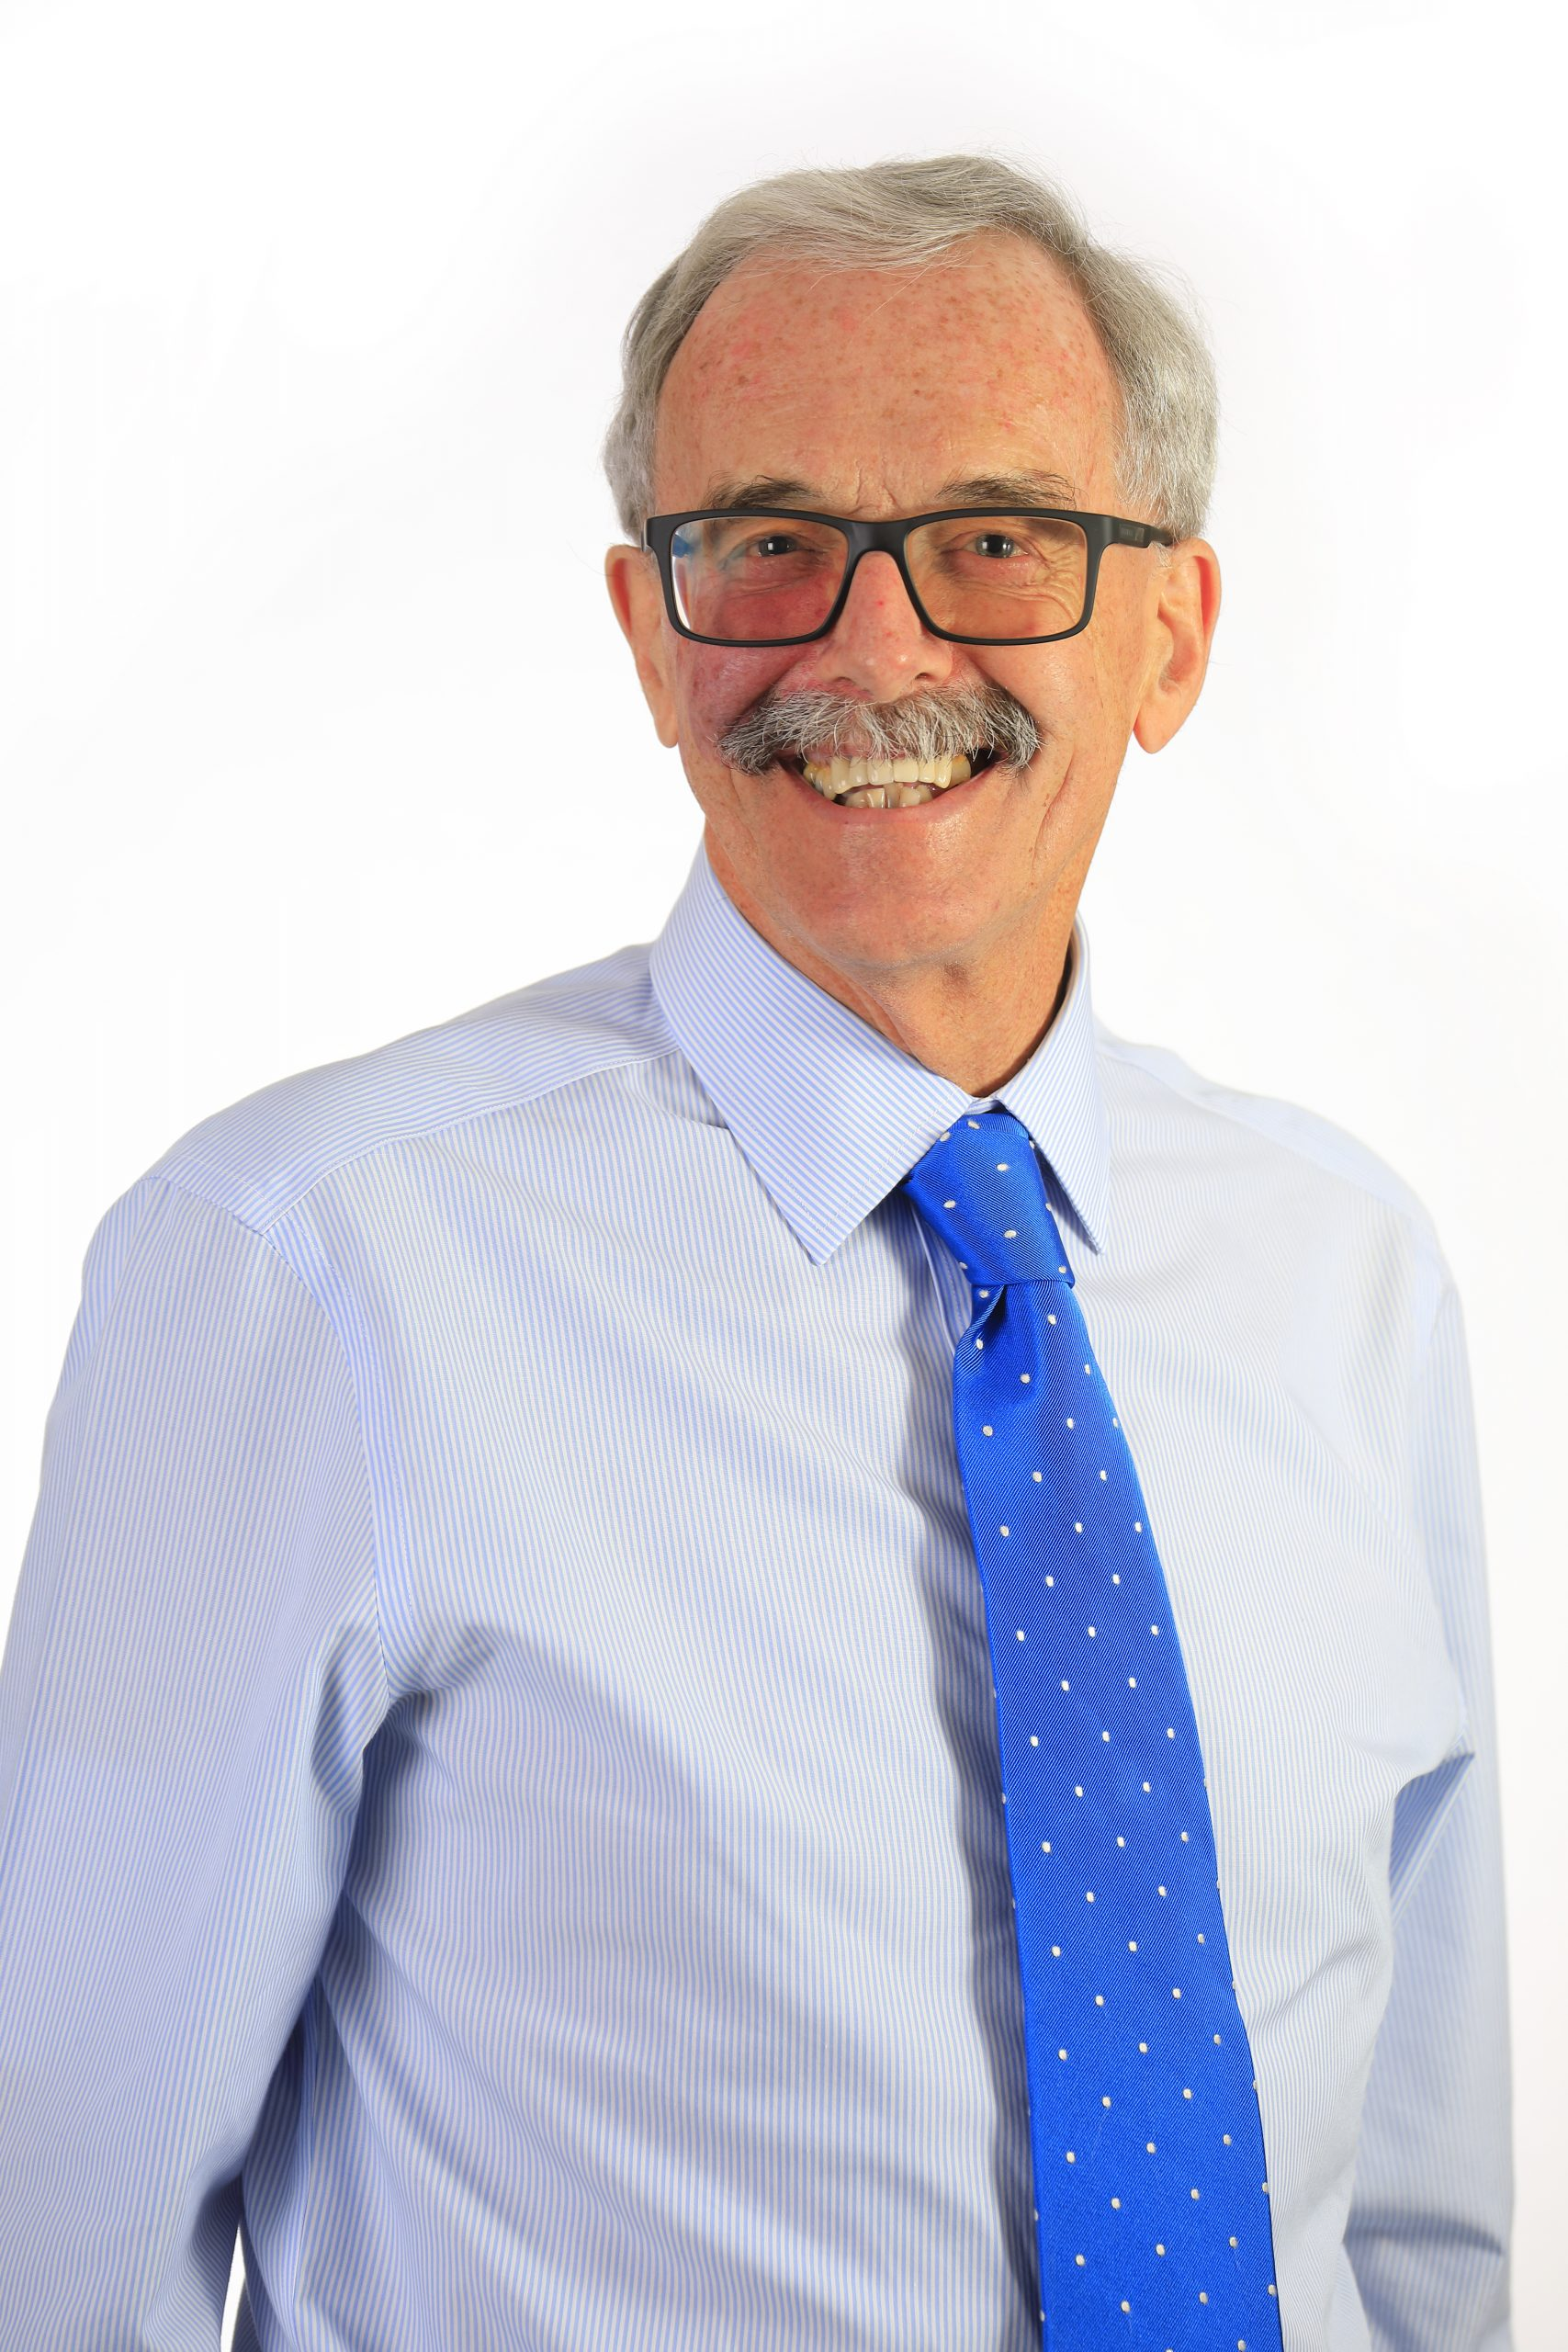 Photo of a smiling grey haired man with a moustache, glasses and smart shirt and tie